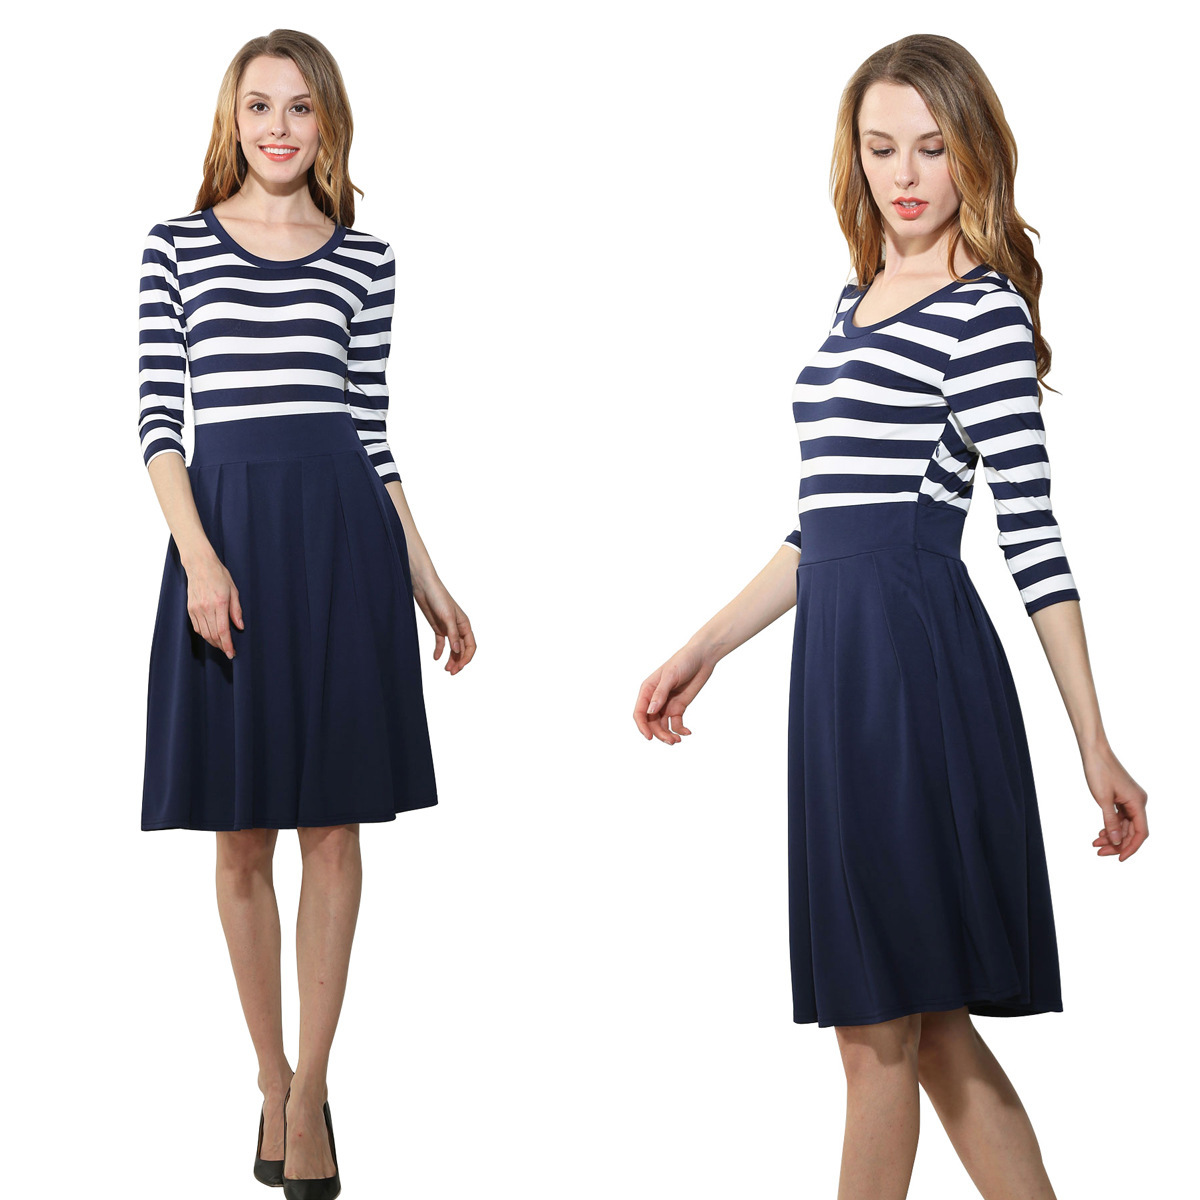 Primary image for Women's Stripe Scoop Neck Short 3/4 Long Sleeve Casual Swing Modest Dresses